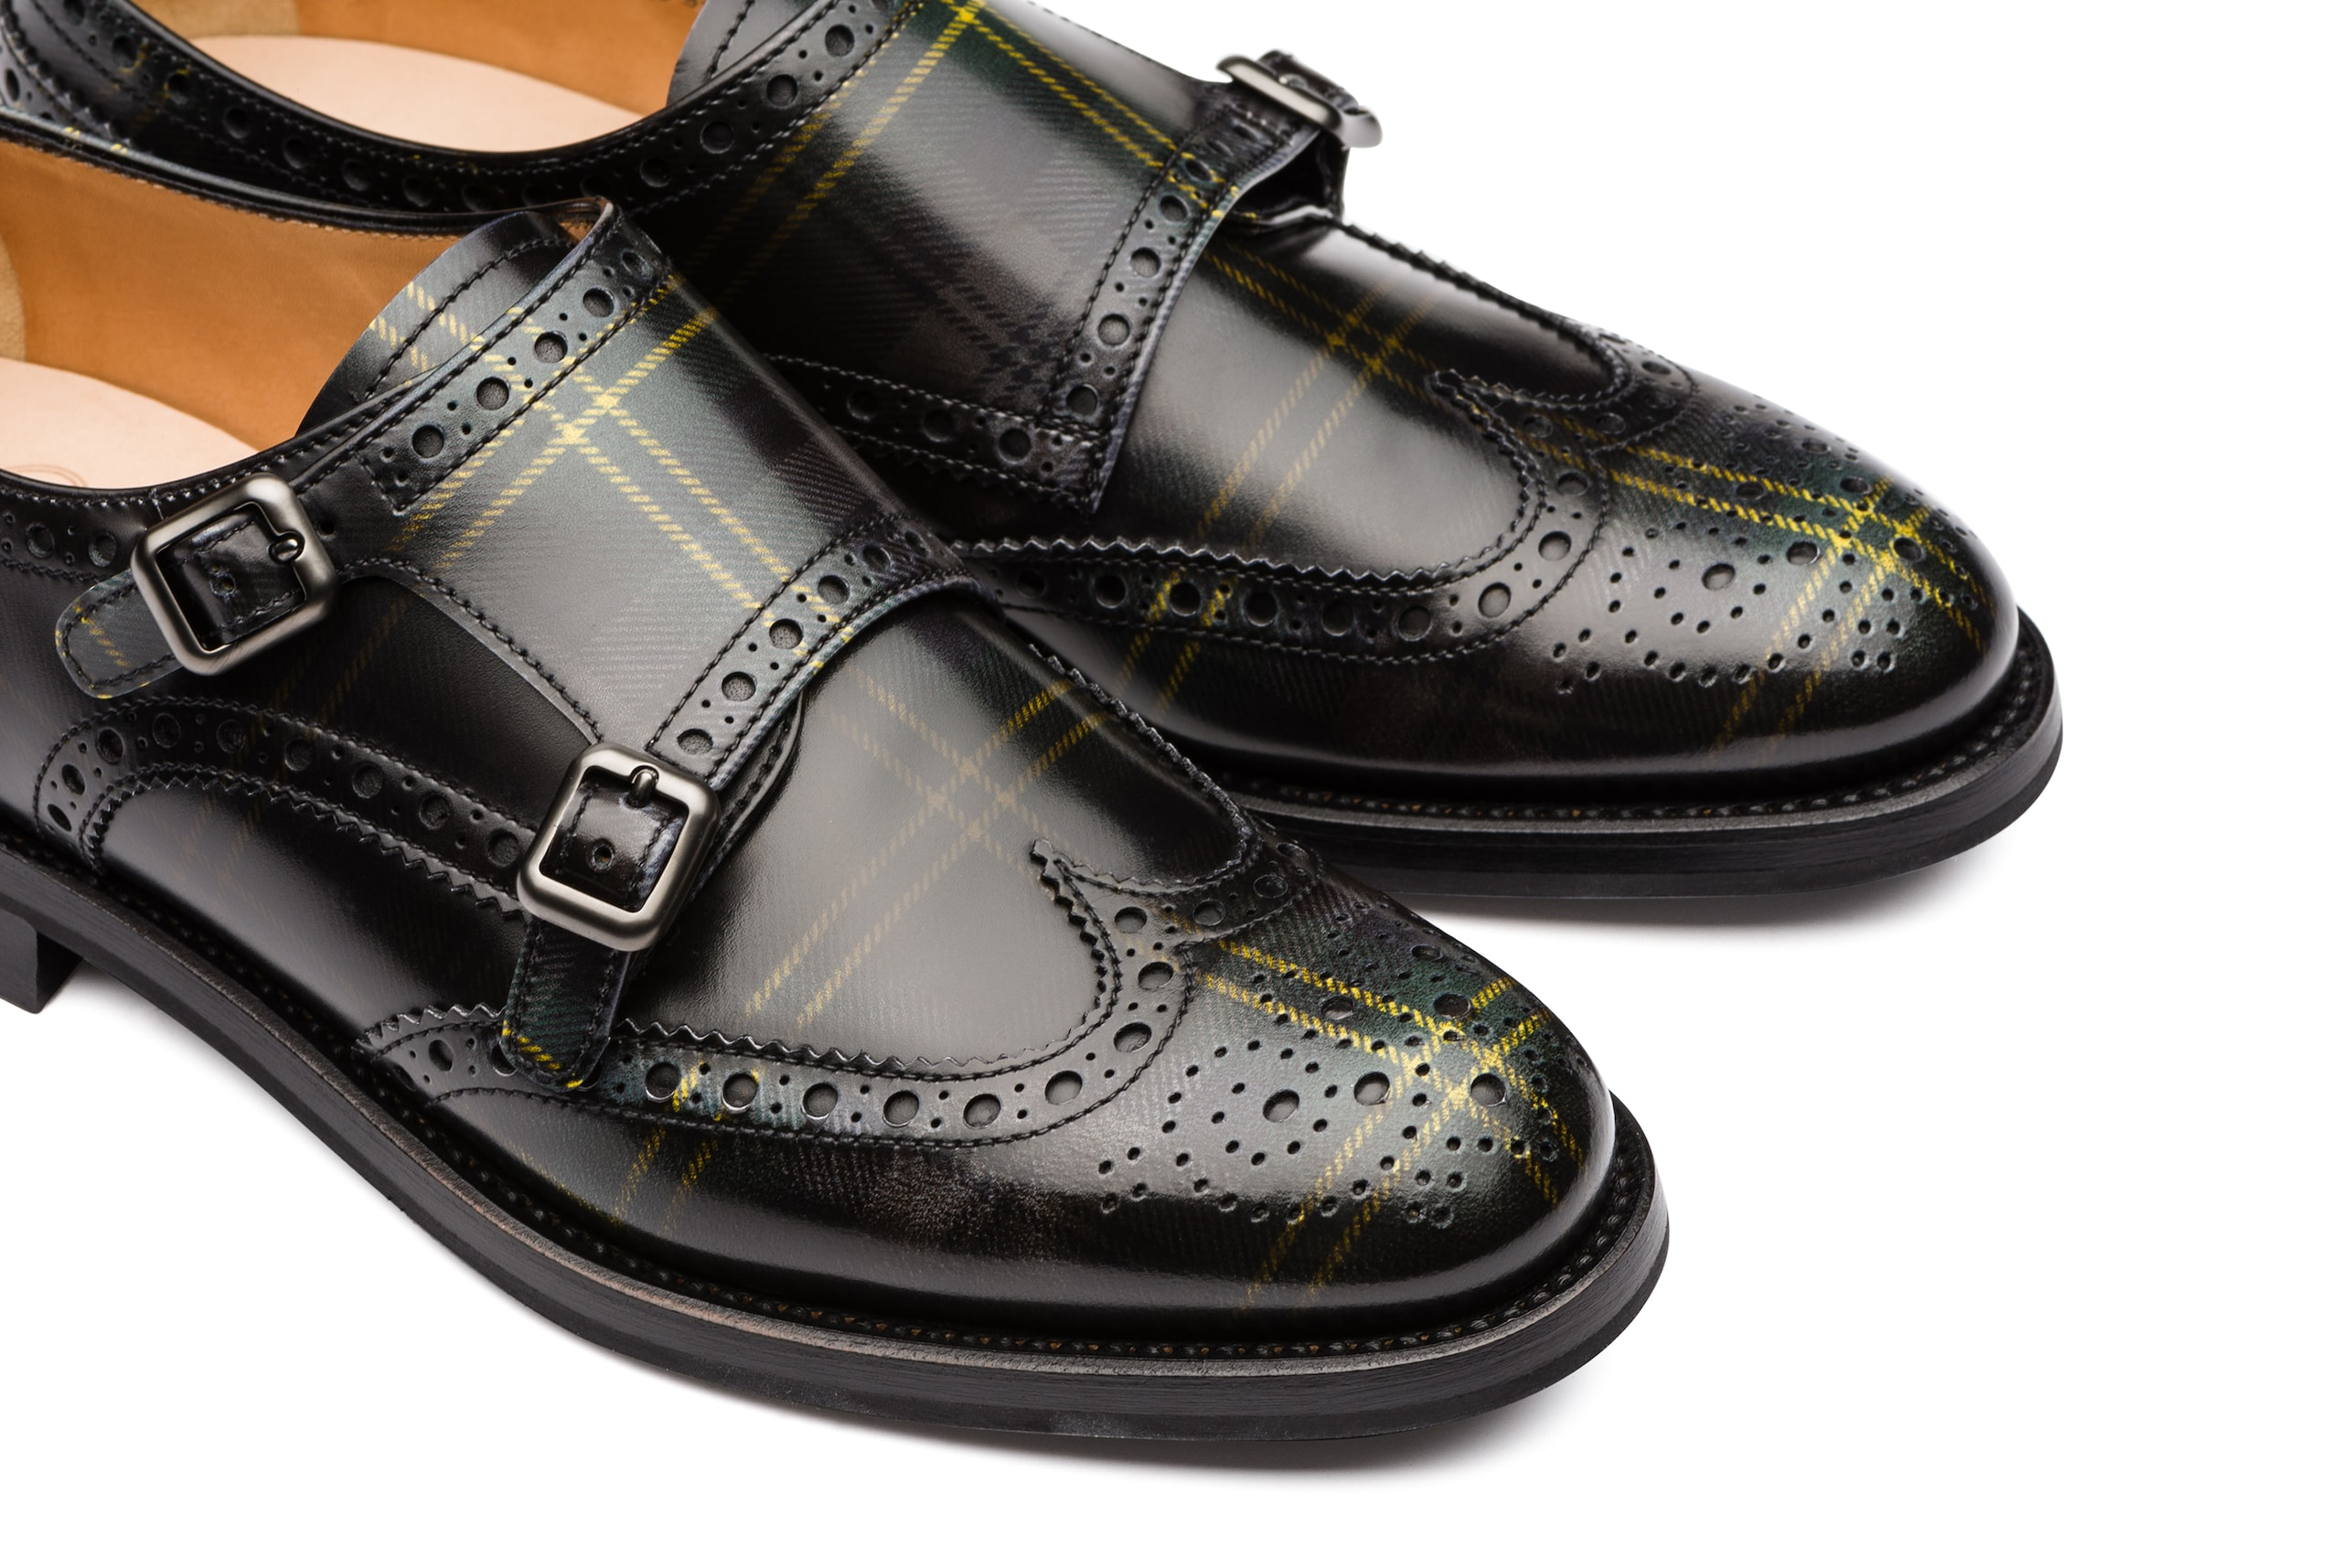 Lana r Church's Polished Fumè Monk Tartan Grey